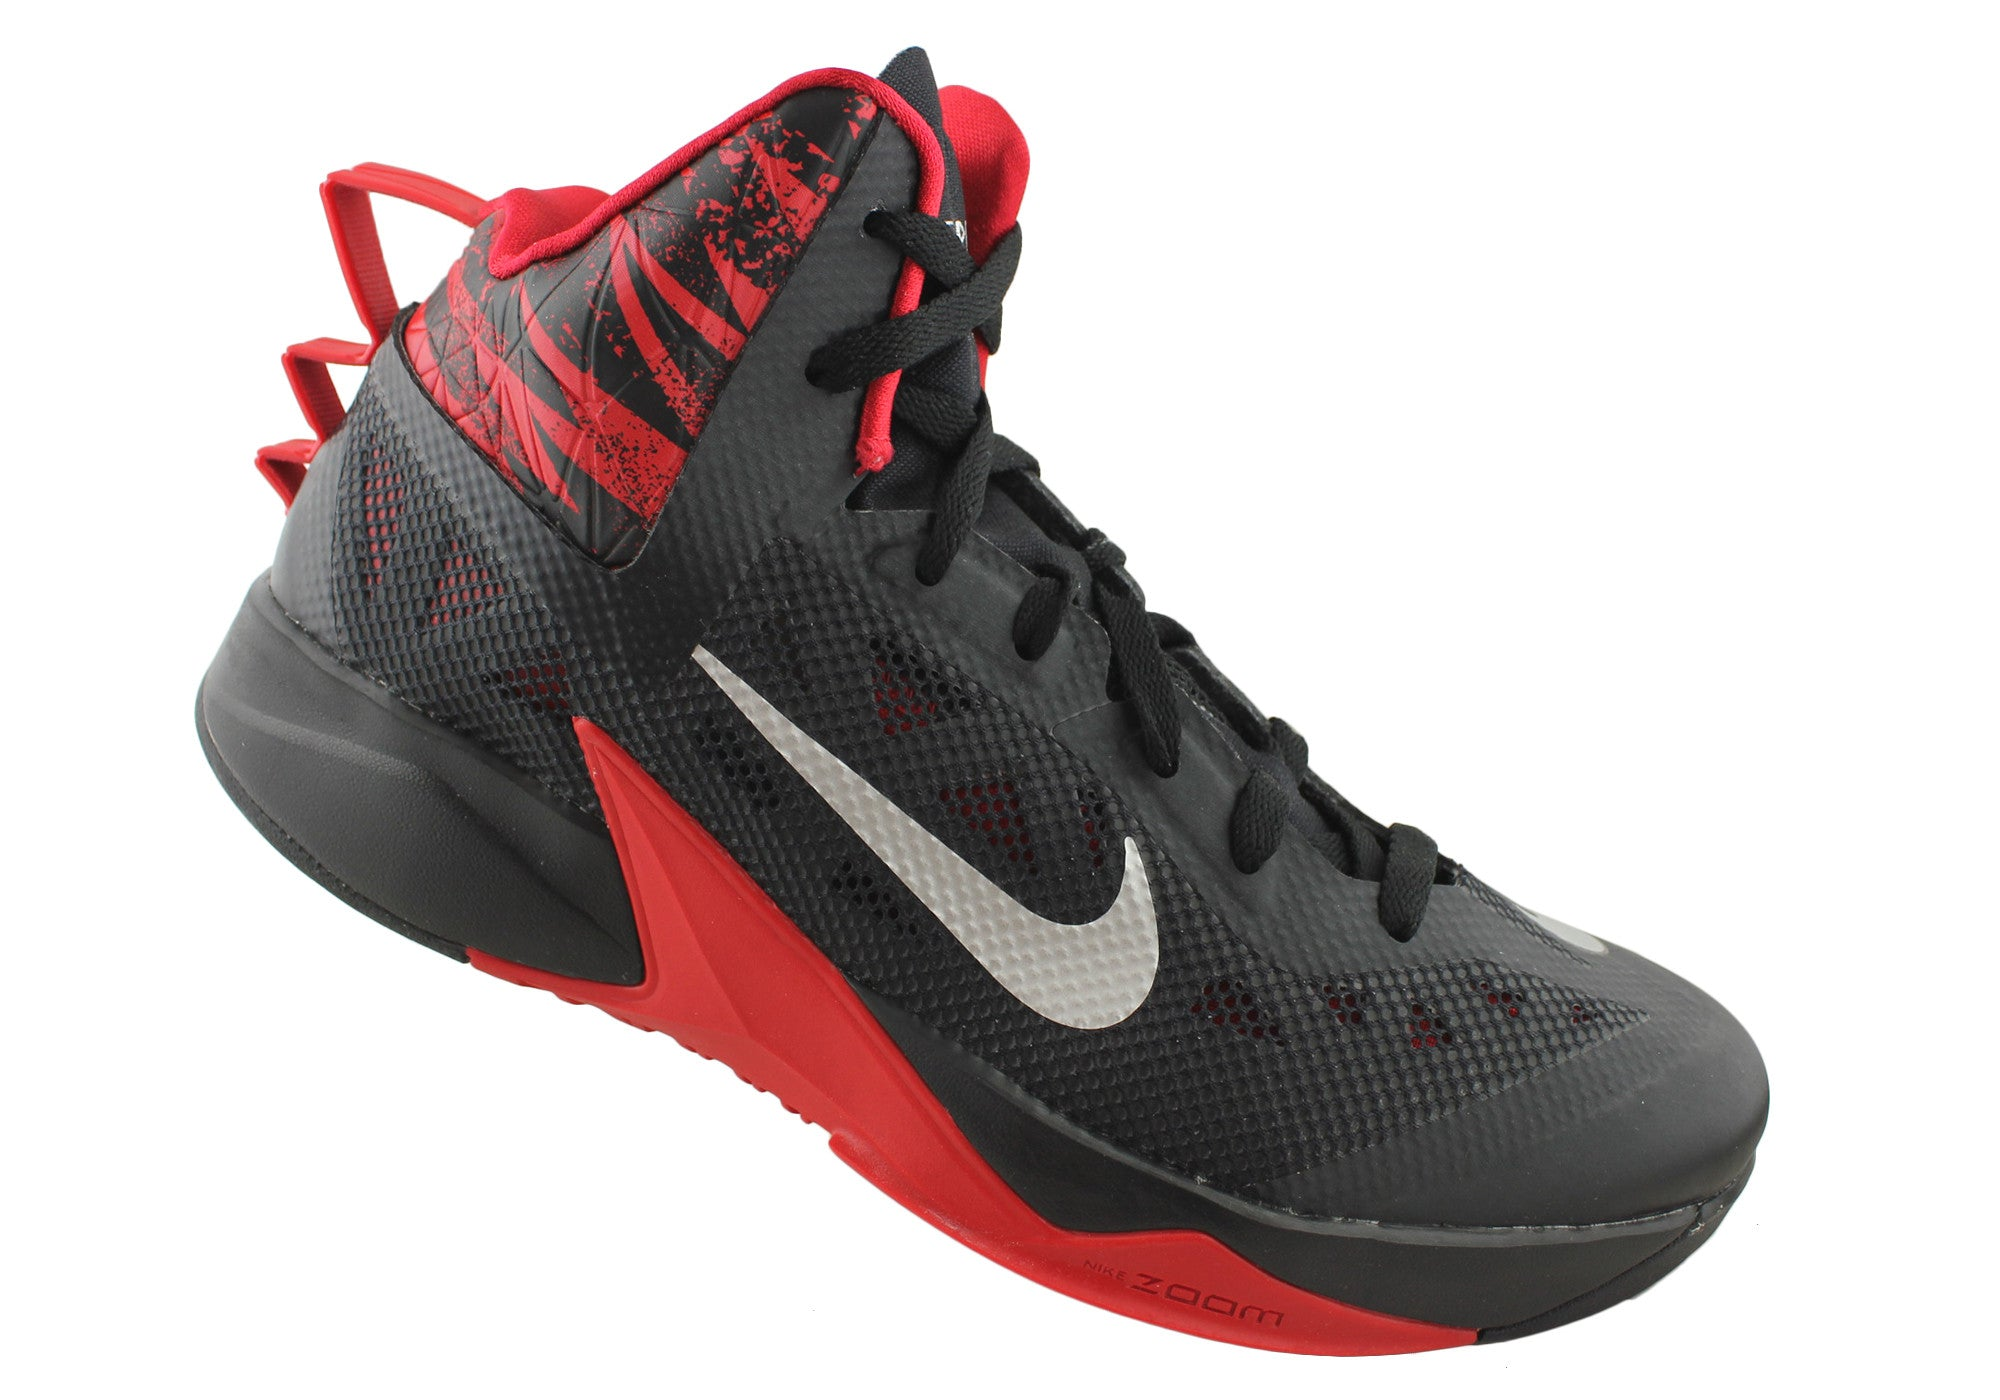 Nike Zoom Hyperfuse 2013 Mens Basketball/Casual High Top Shoes